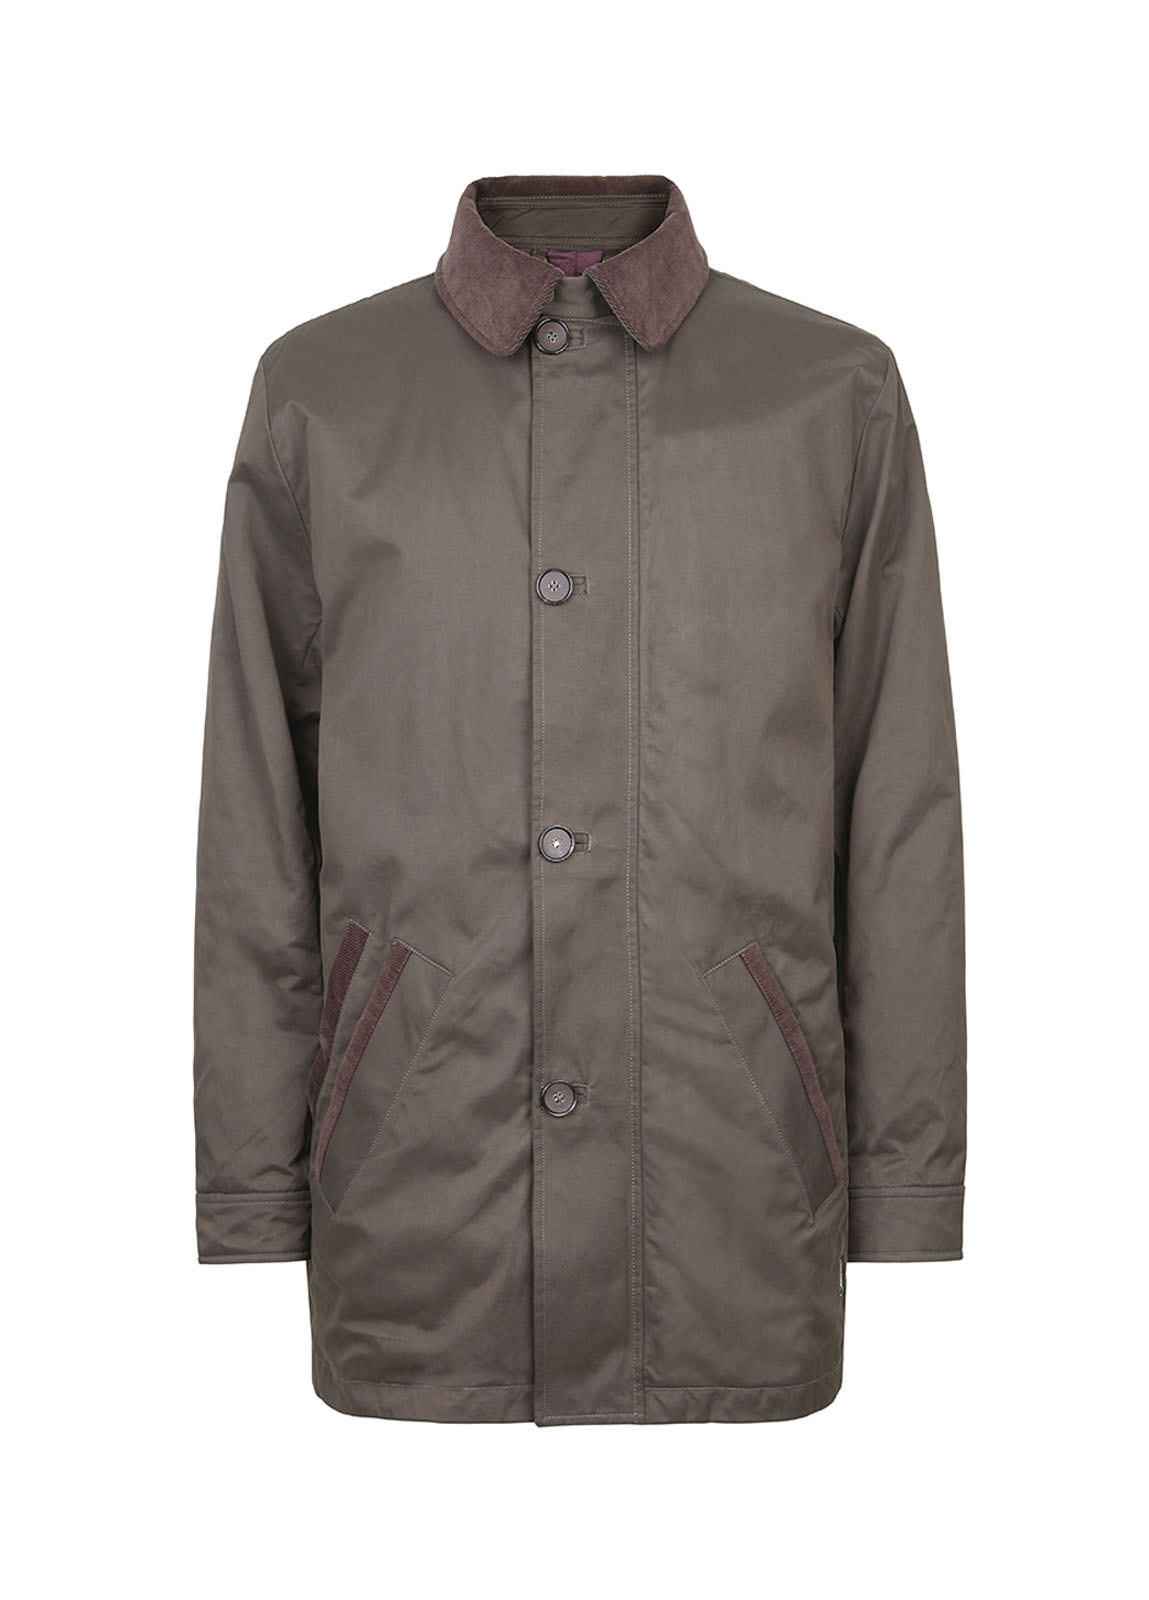 Dubarry_Doyle Men's Waterproof Jacket - Verdigris_Image_2